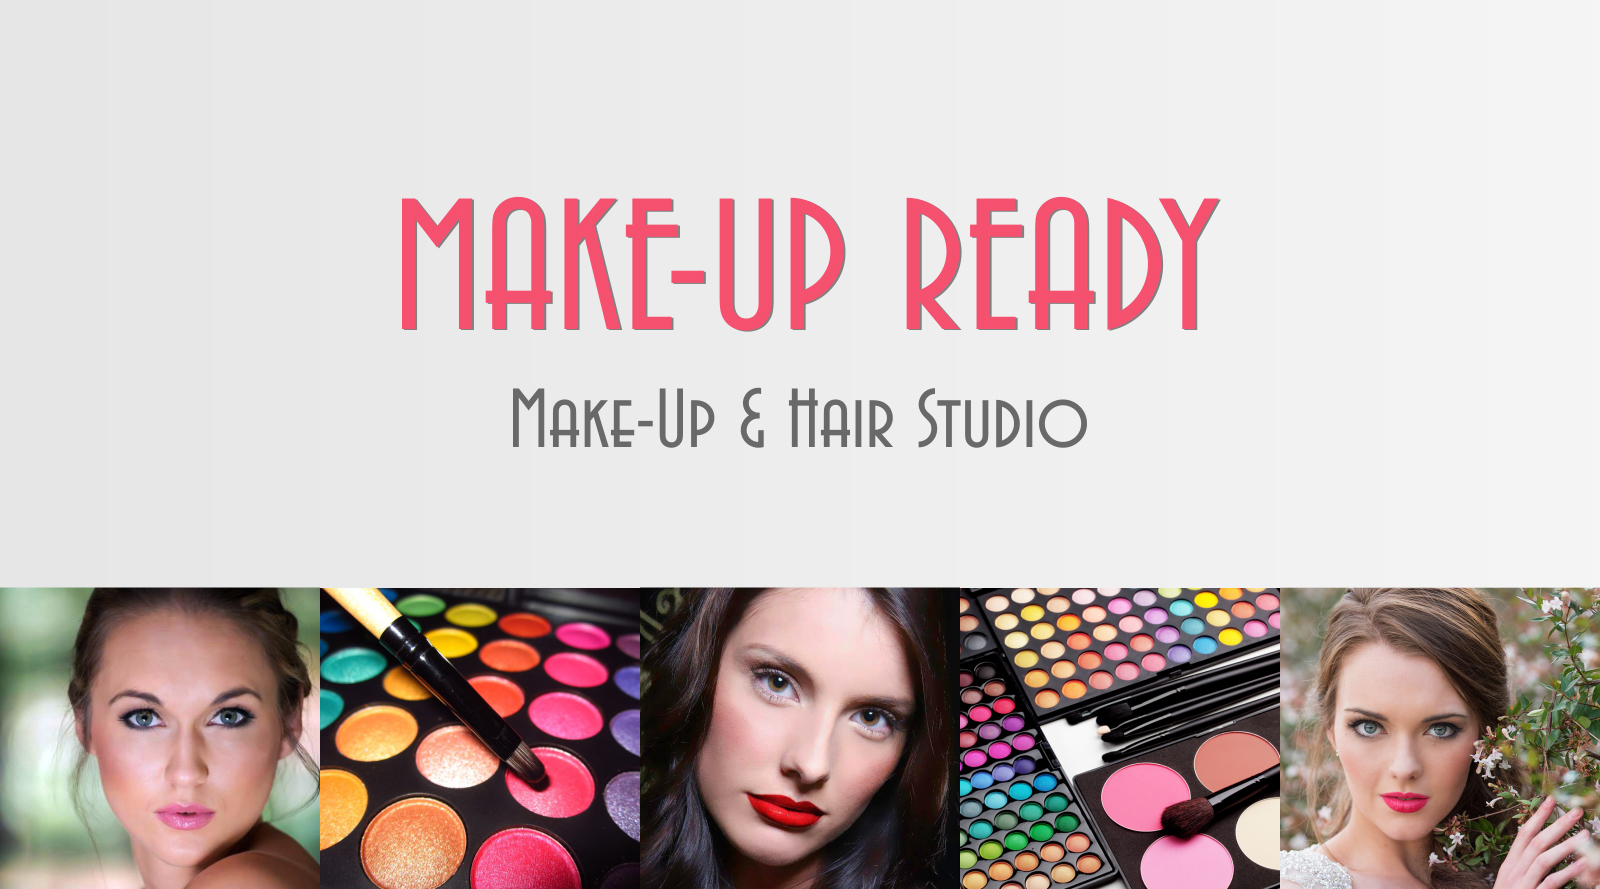 MAKEUP-READY_Temp-Logo_2_28Jan2016